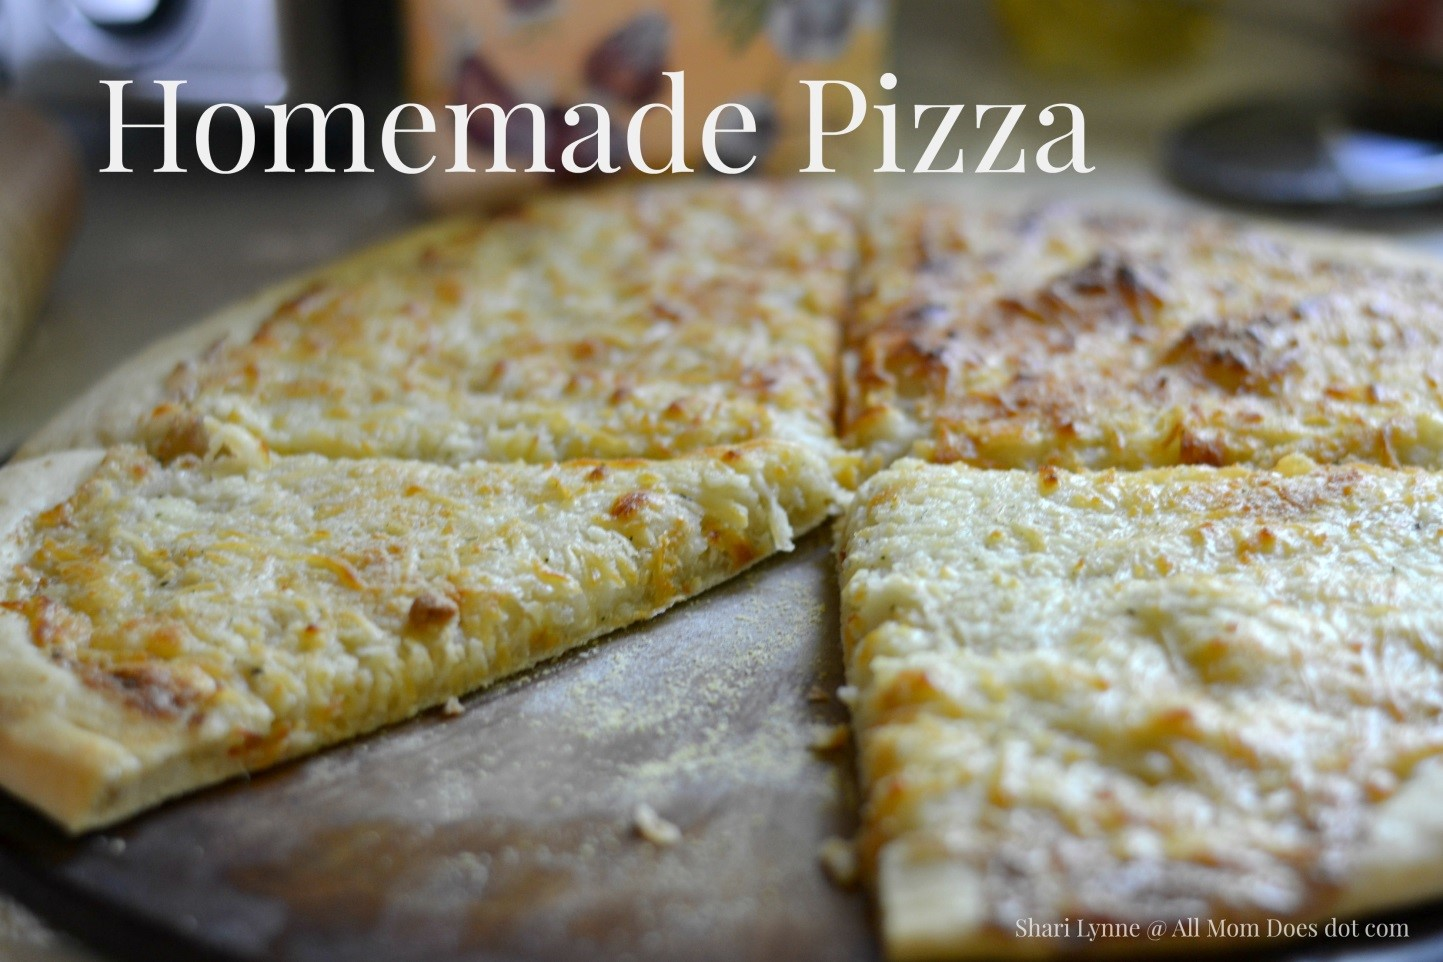 Recipe: Homemade Pizza